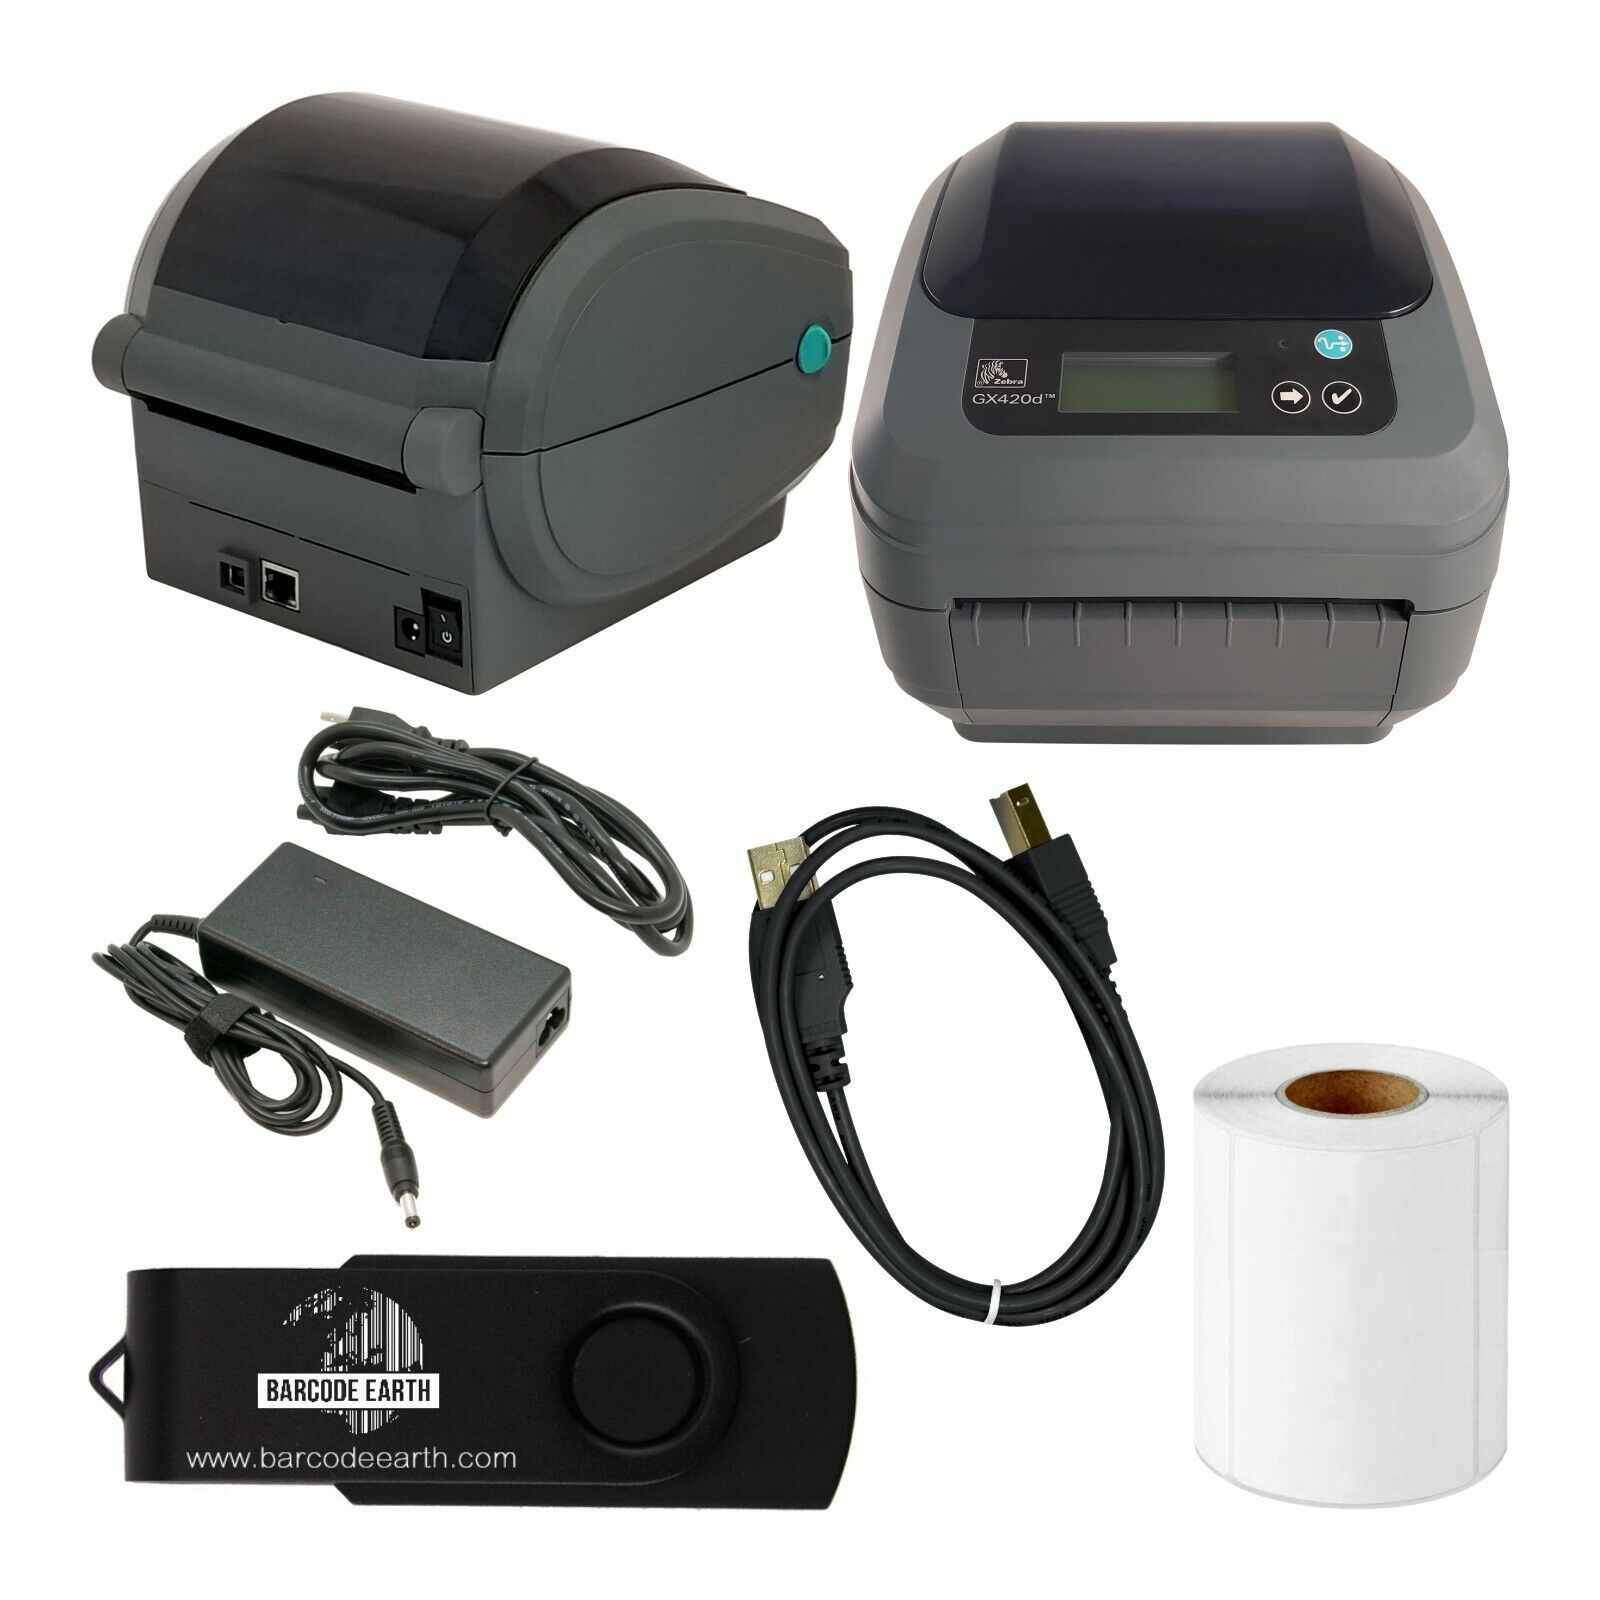 Zebra GX420d Desktop Direct Thermal Label Printer with Ethernet & USB w/ Tech!. Buy it now for 169.99